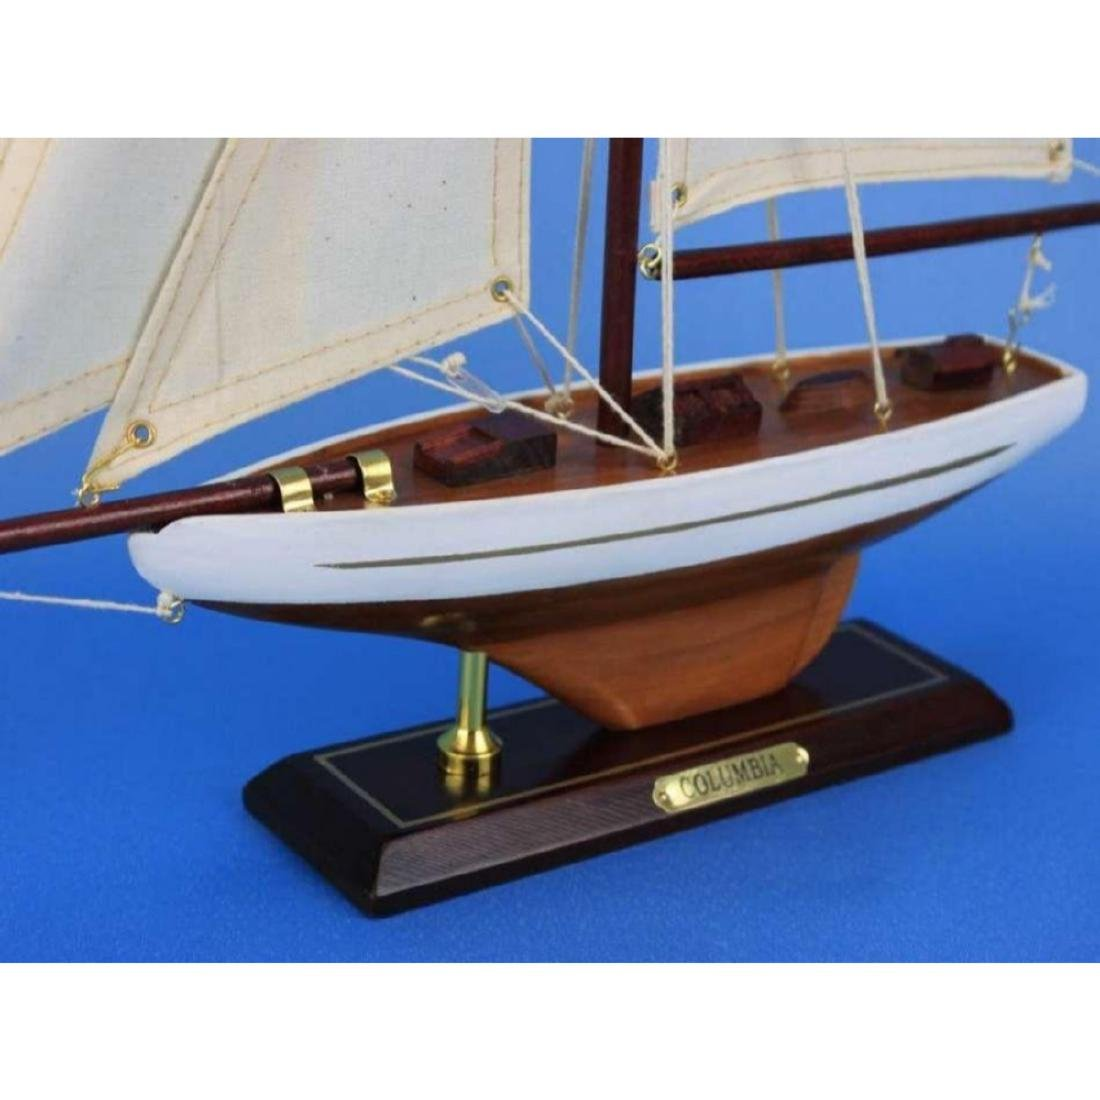 "Wooden Columbia Model Sailboat Decoration 16"" - 8"